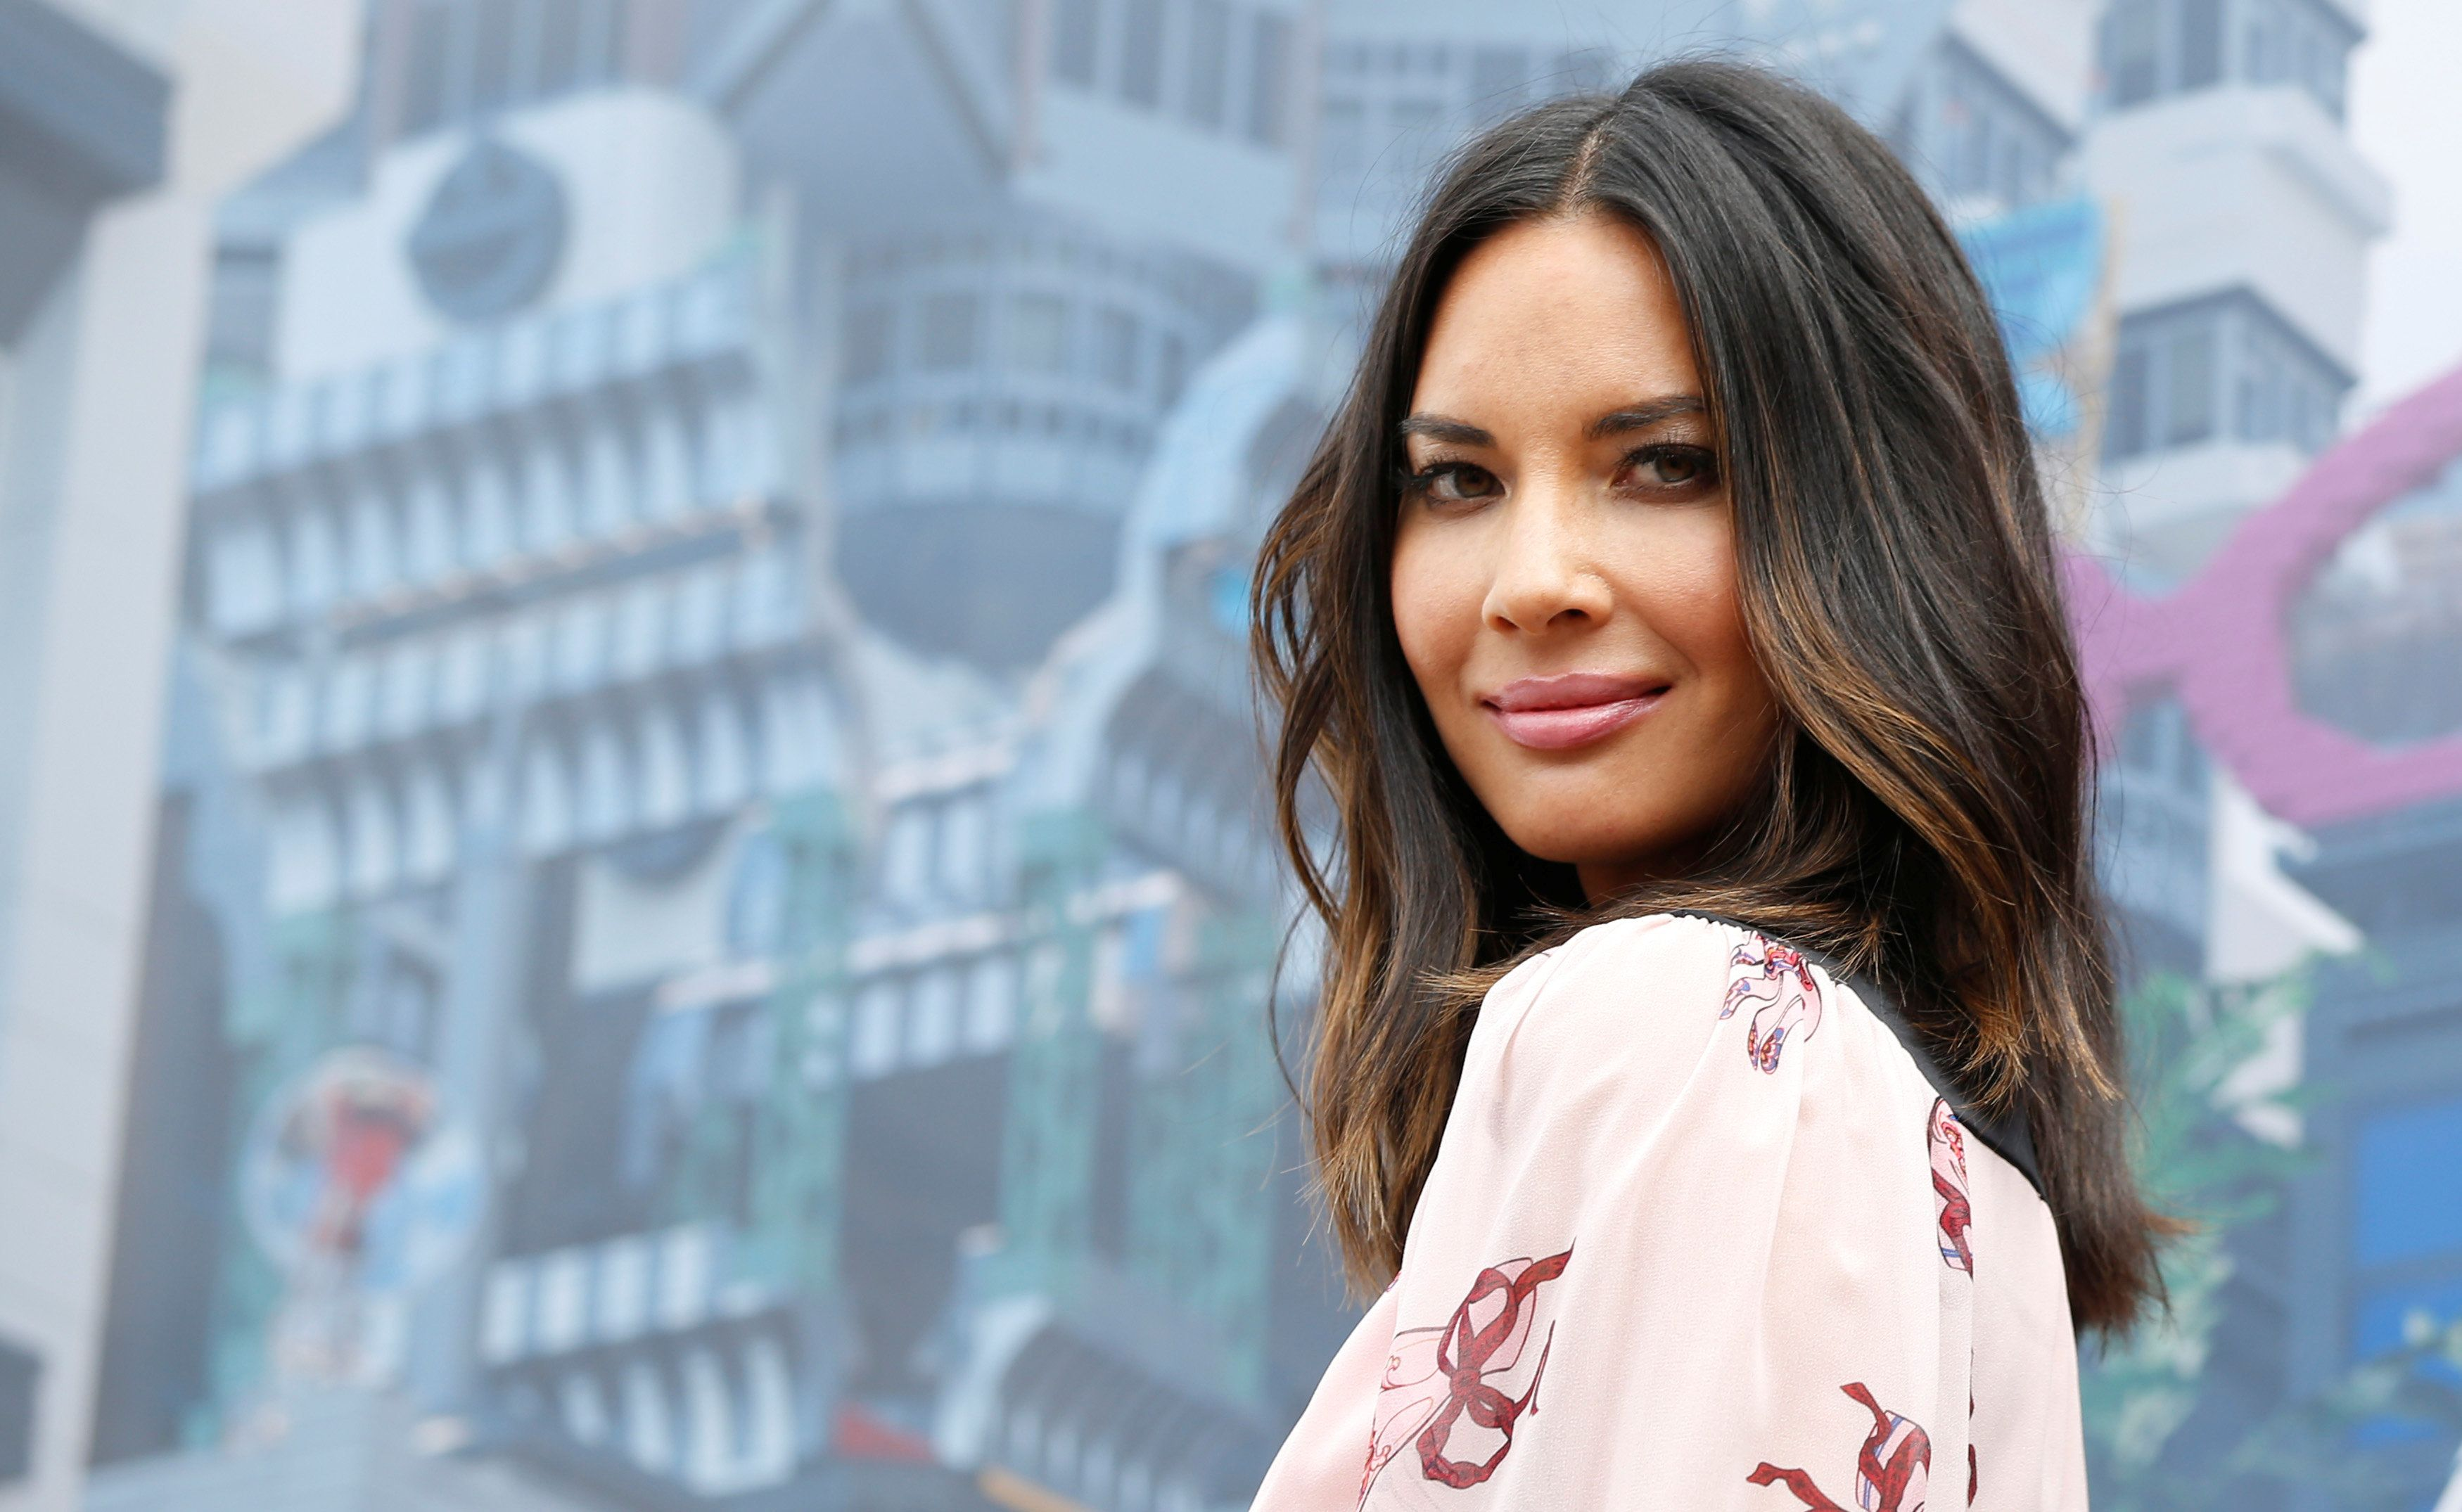 Olivia Munn Links Hollywood Sexual Misconduct Epidemic To Gender Pay Gap